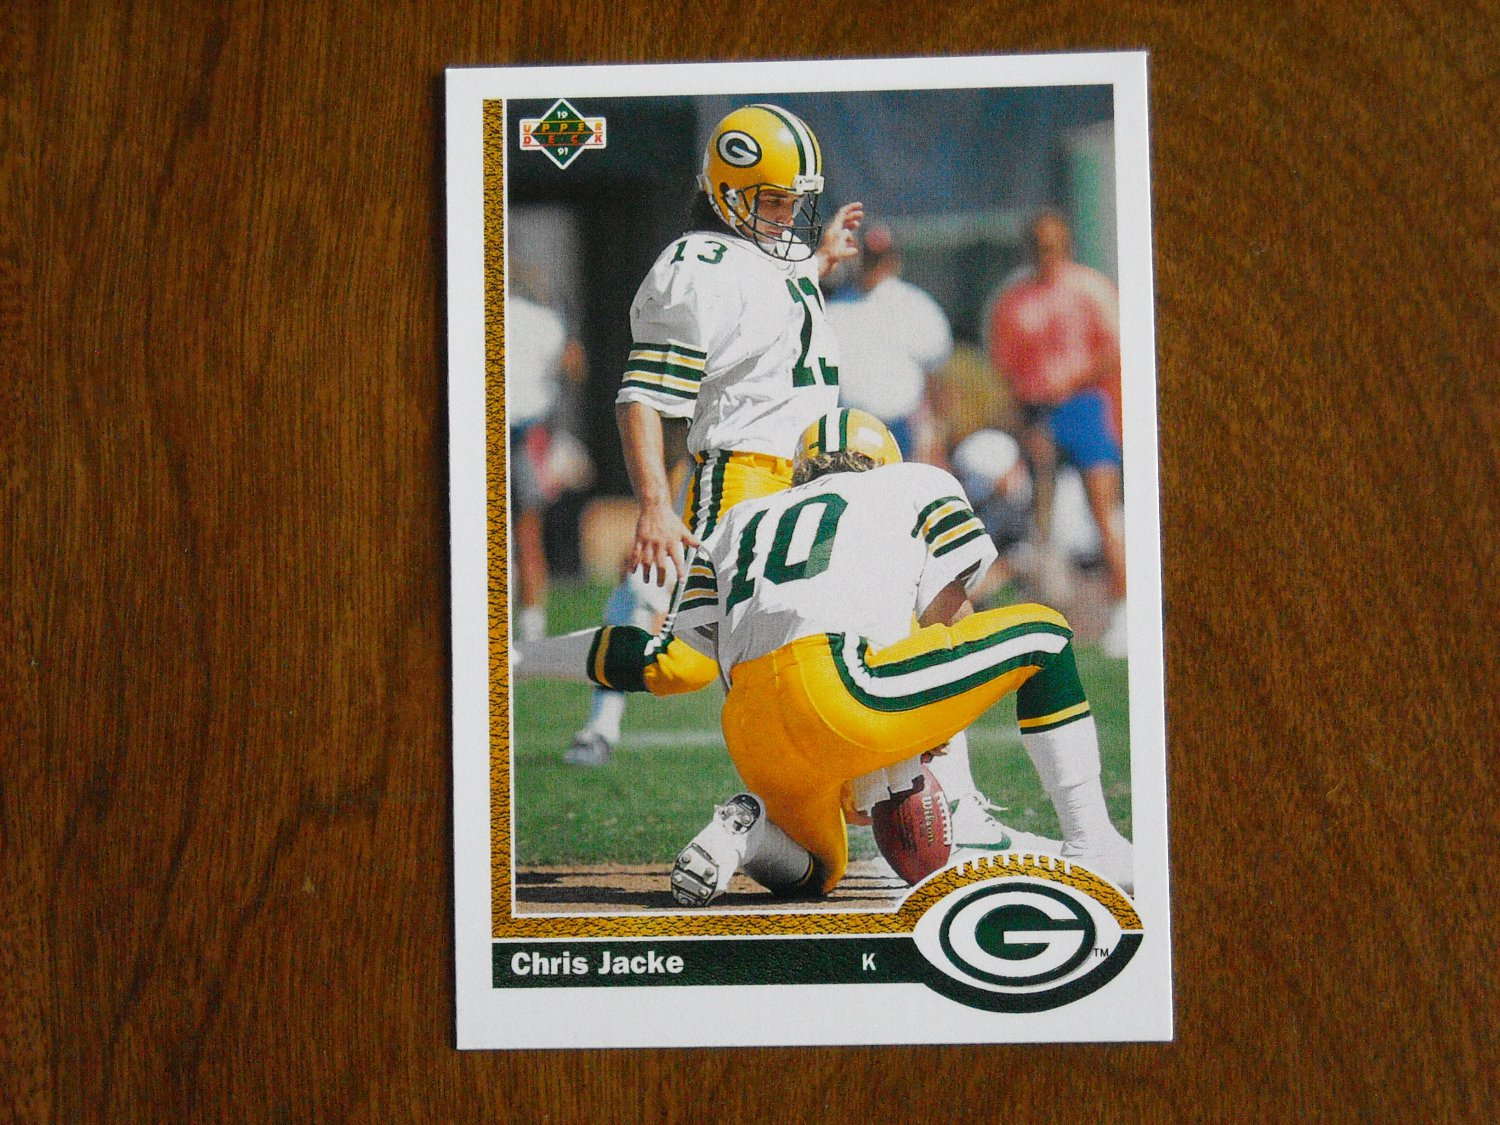 finest selection 40db3 65f8d Chris Jacke Green Bay Packers #577 - 1991 Upper Deck ...